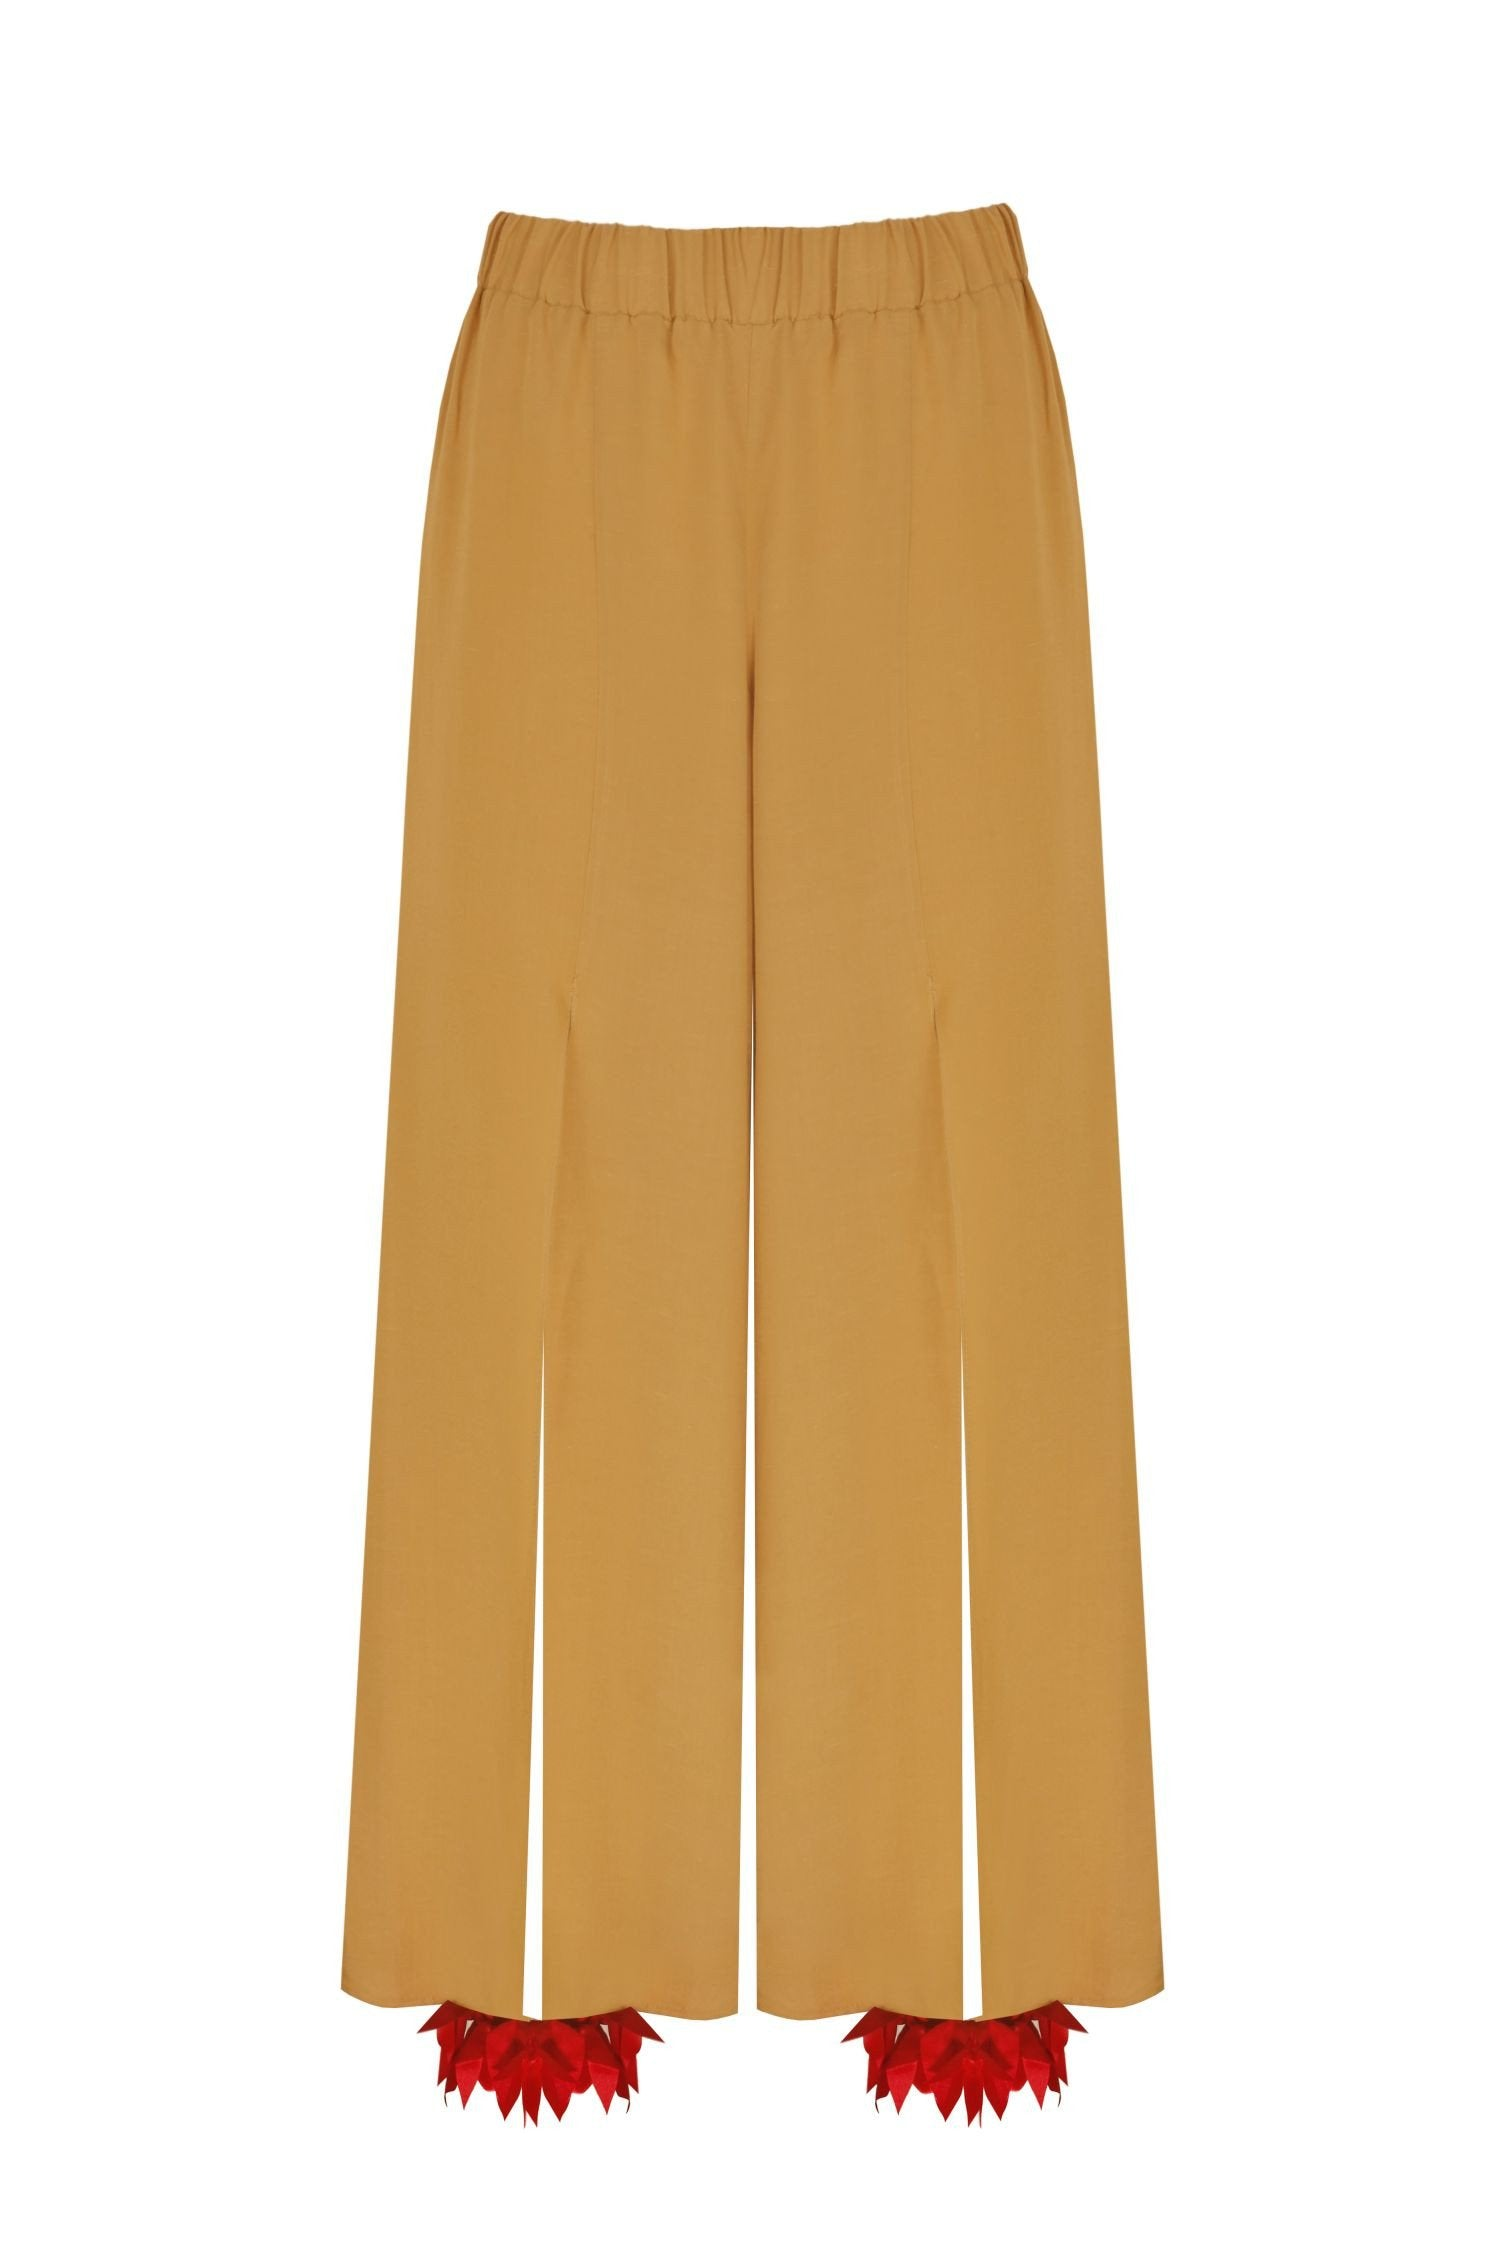 "Mustard  Colored ""Harem"" Trousers"